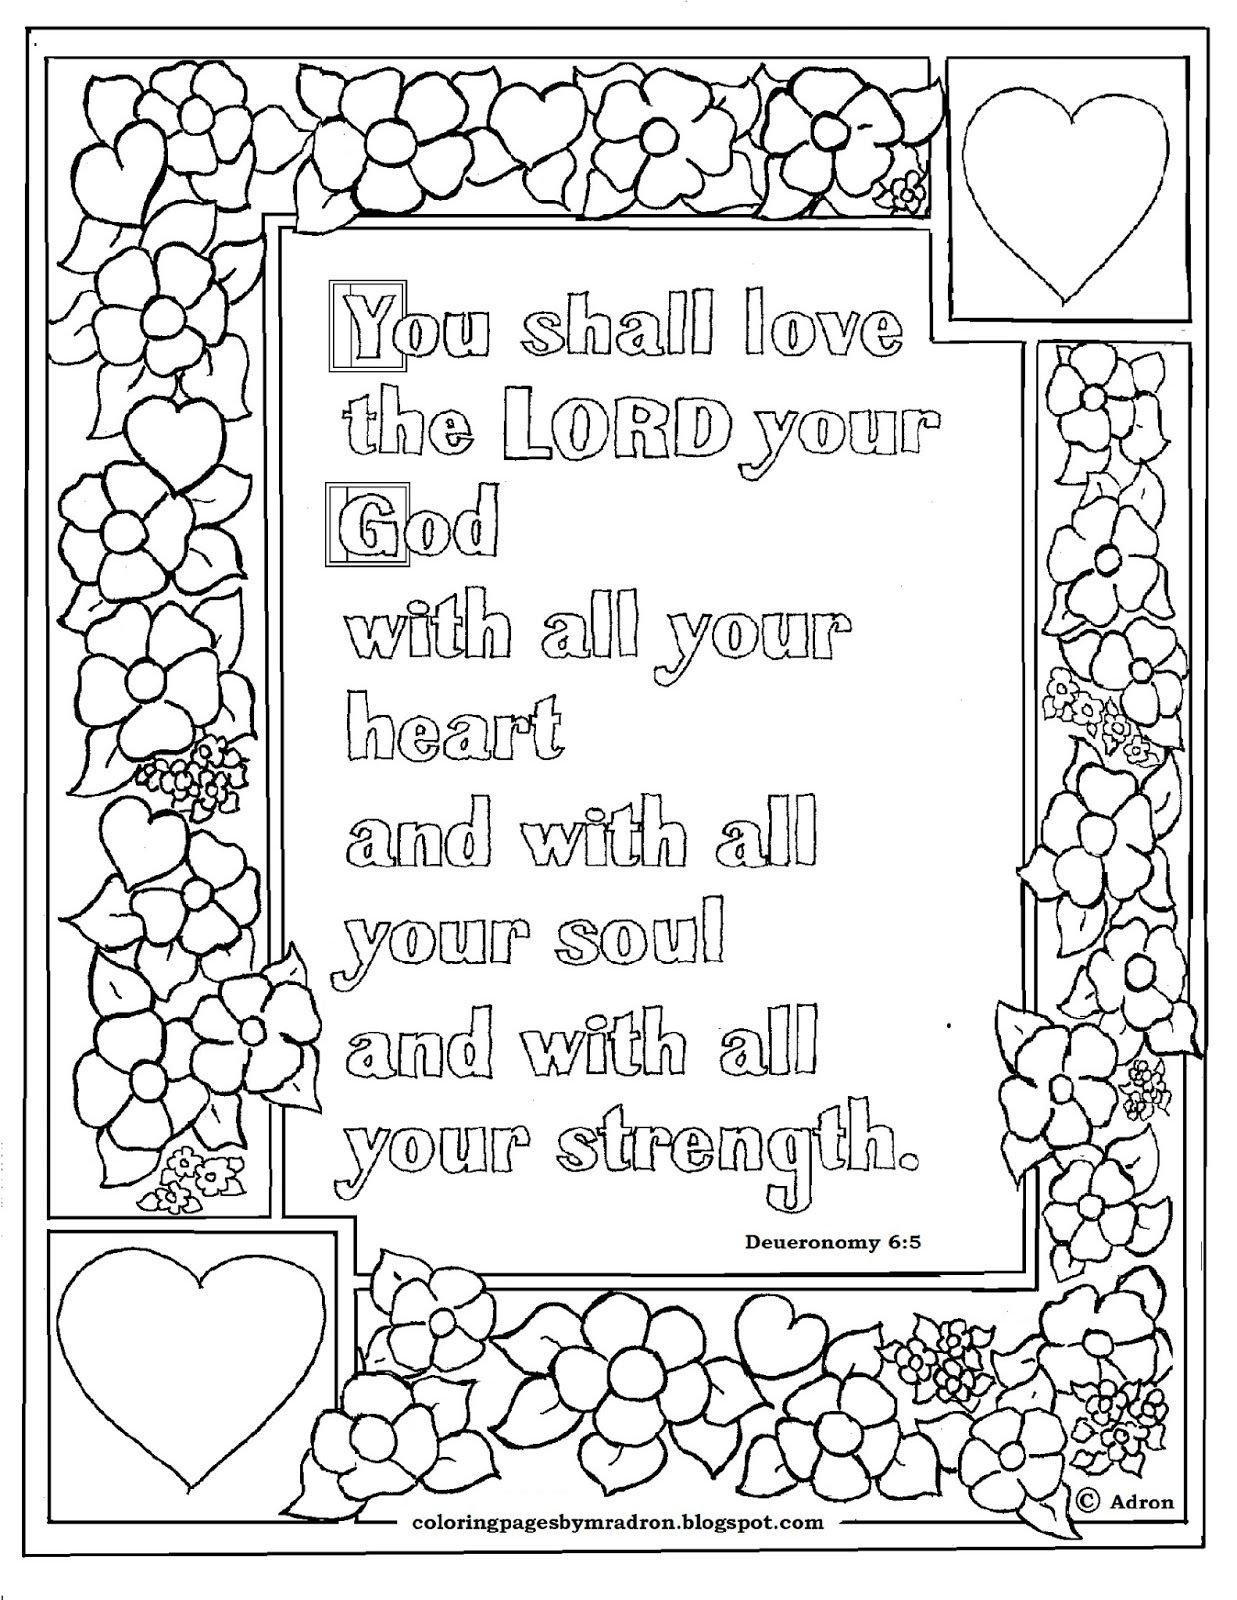 Jesus Loves the Little Children Coloring Pages  Printable 16r - Free For kids